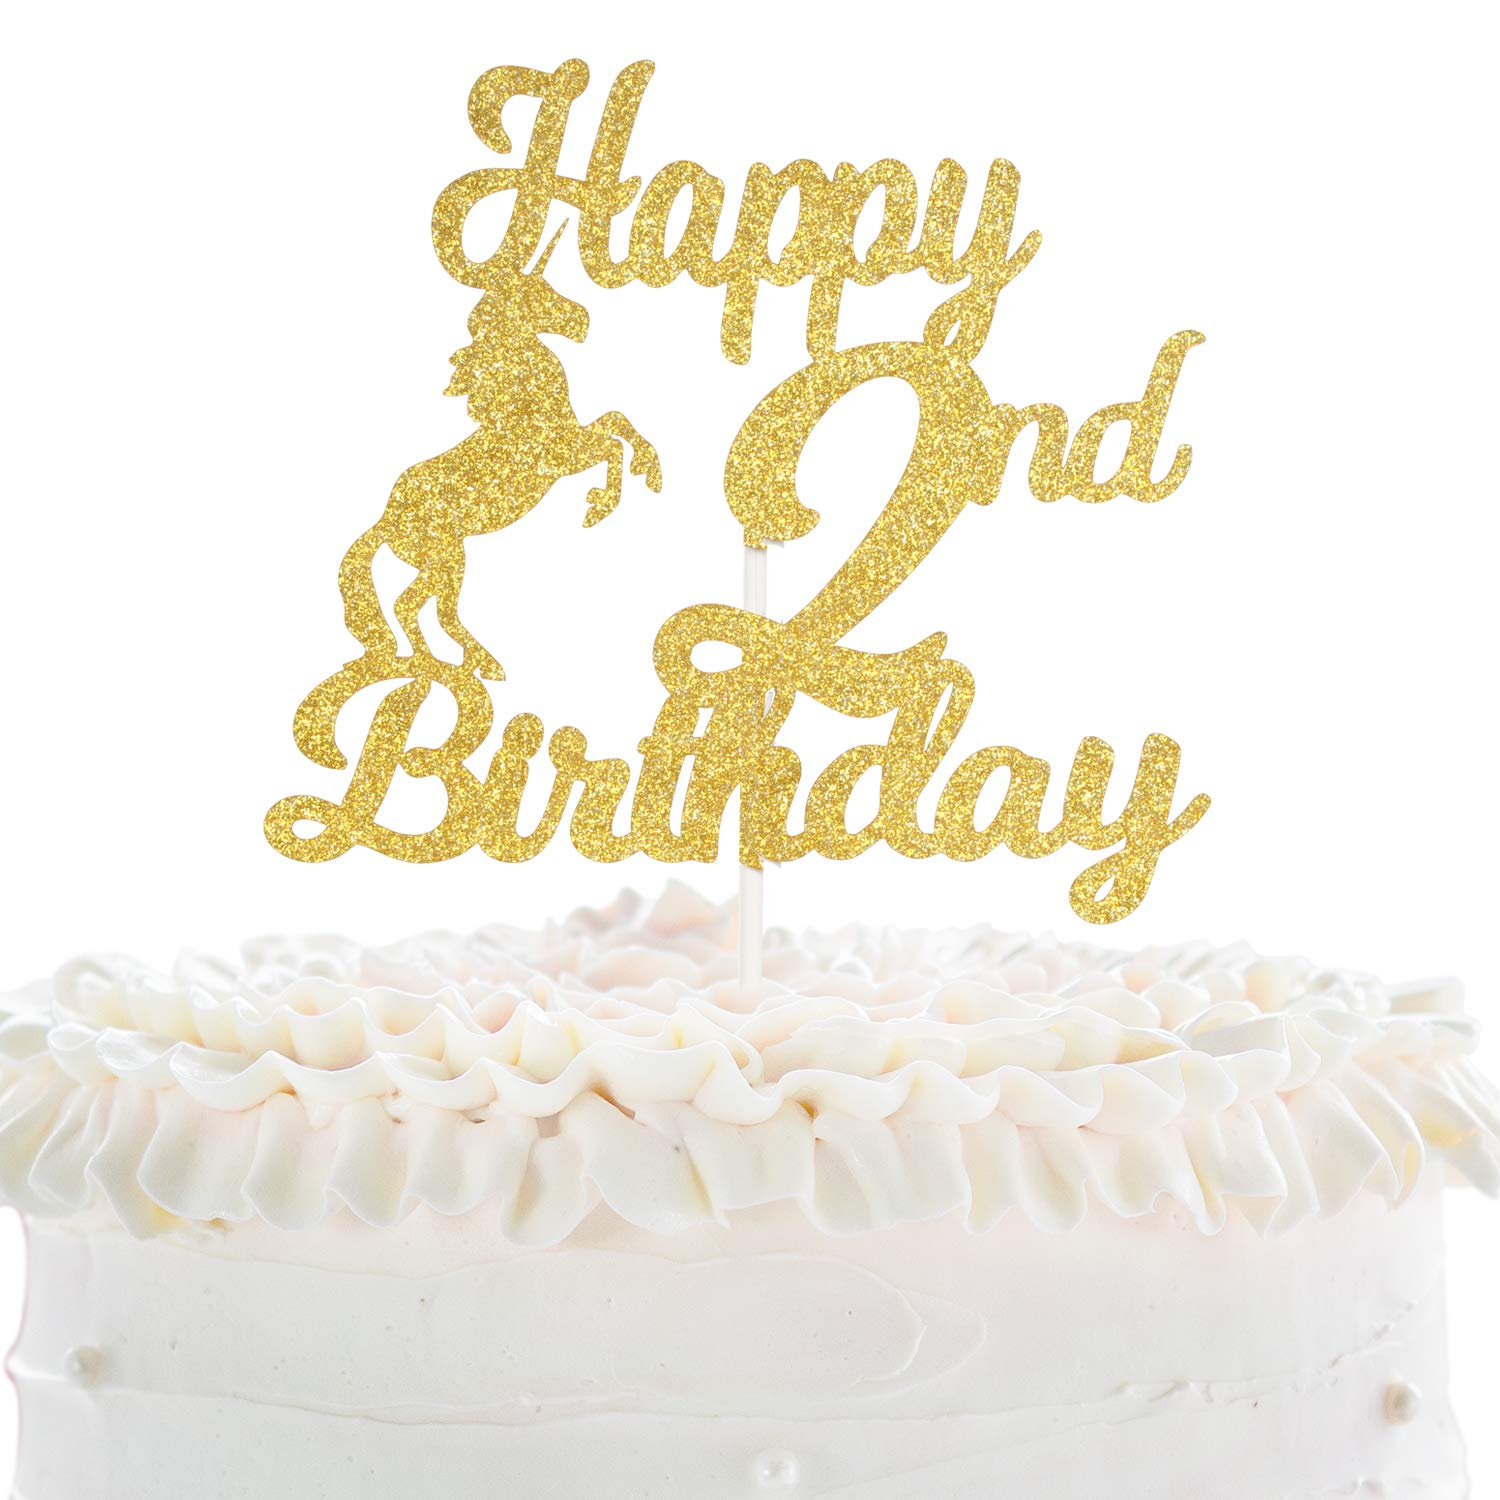 Surprising Happy 2Nd Birthday Cake Topper Unicorn Theme Gold Glitter Decor Funny Birthday Cards Online Inifodamsfinfo